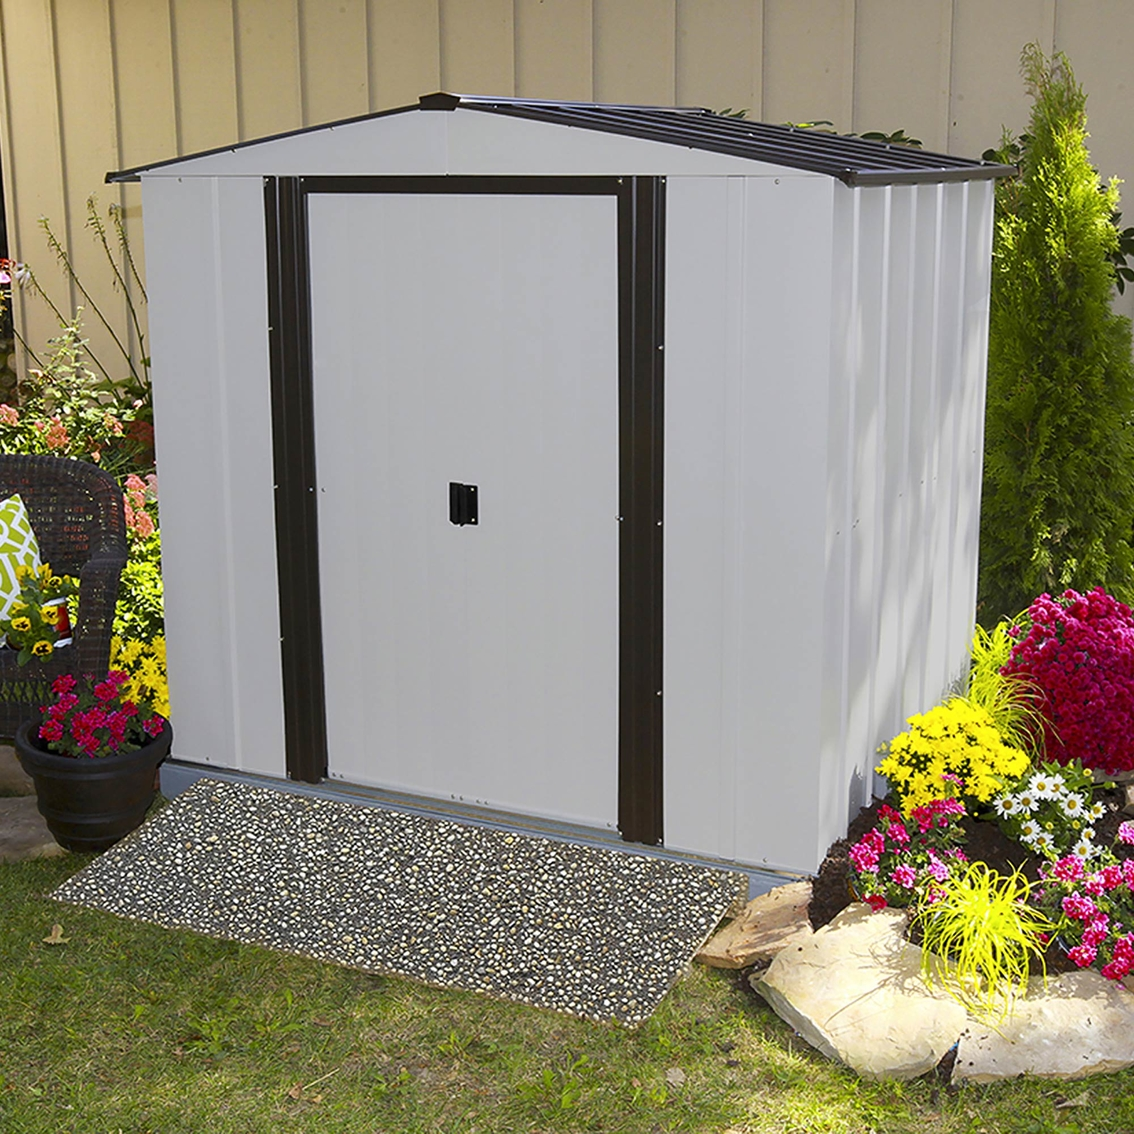 Steel Storage Sheds Arrow Newburgh Steel Storage Shed Storage Sheds More Shop